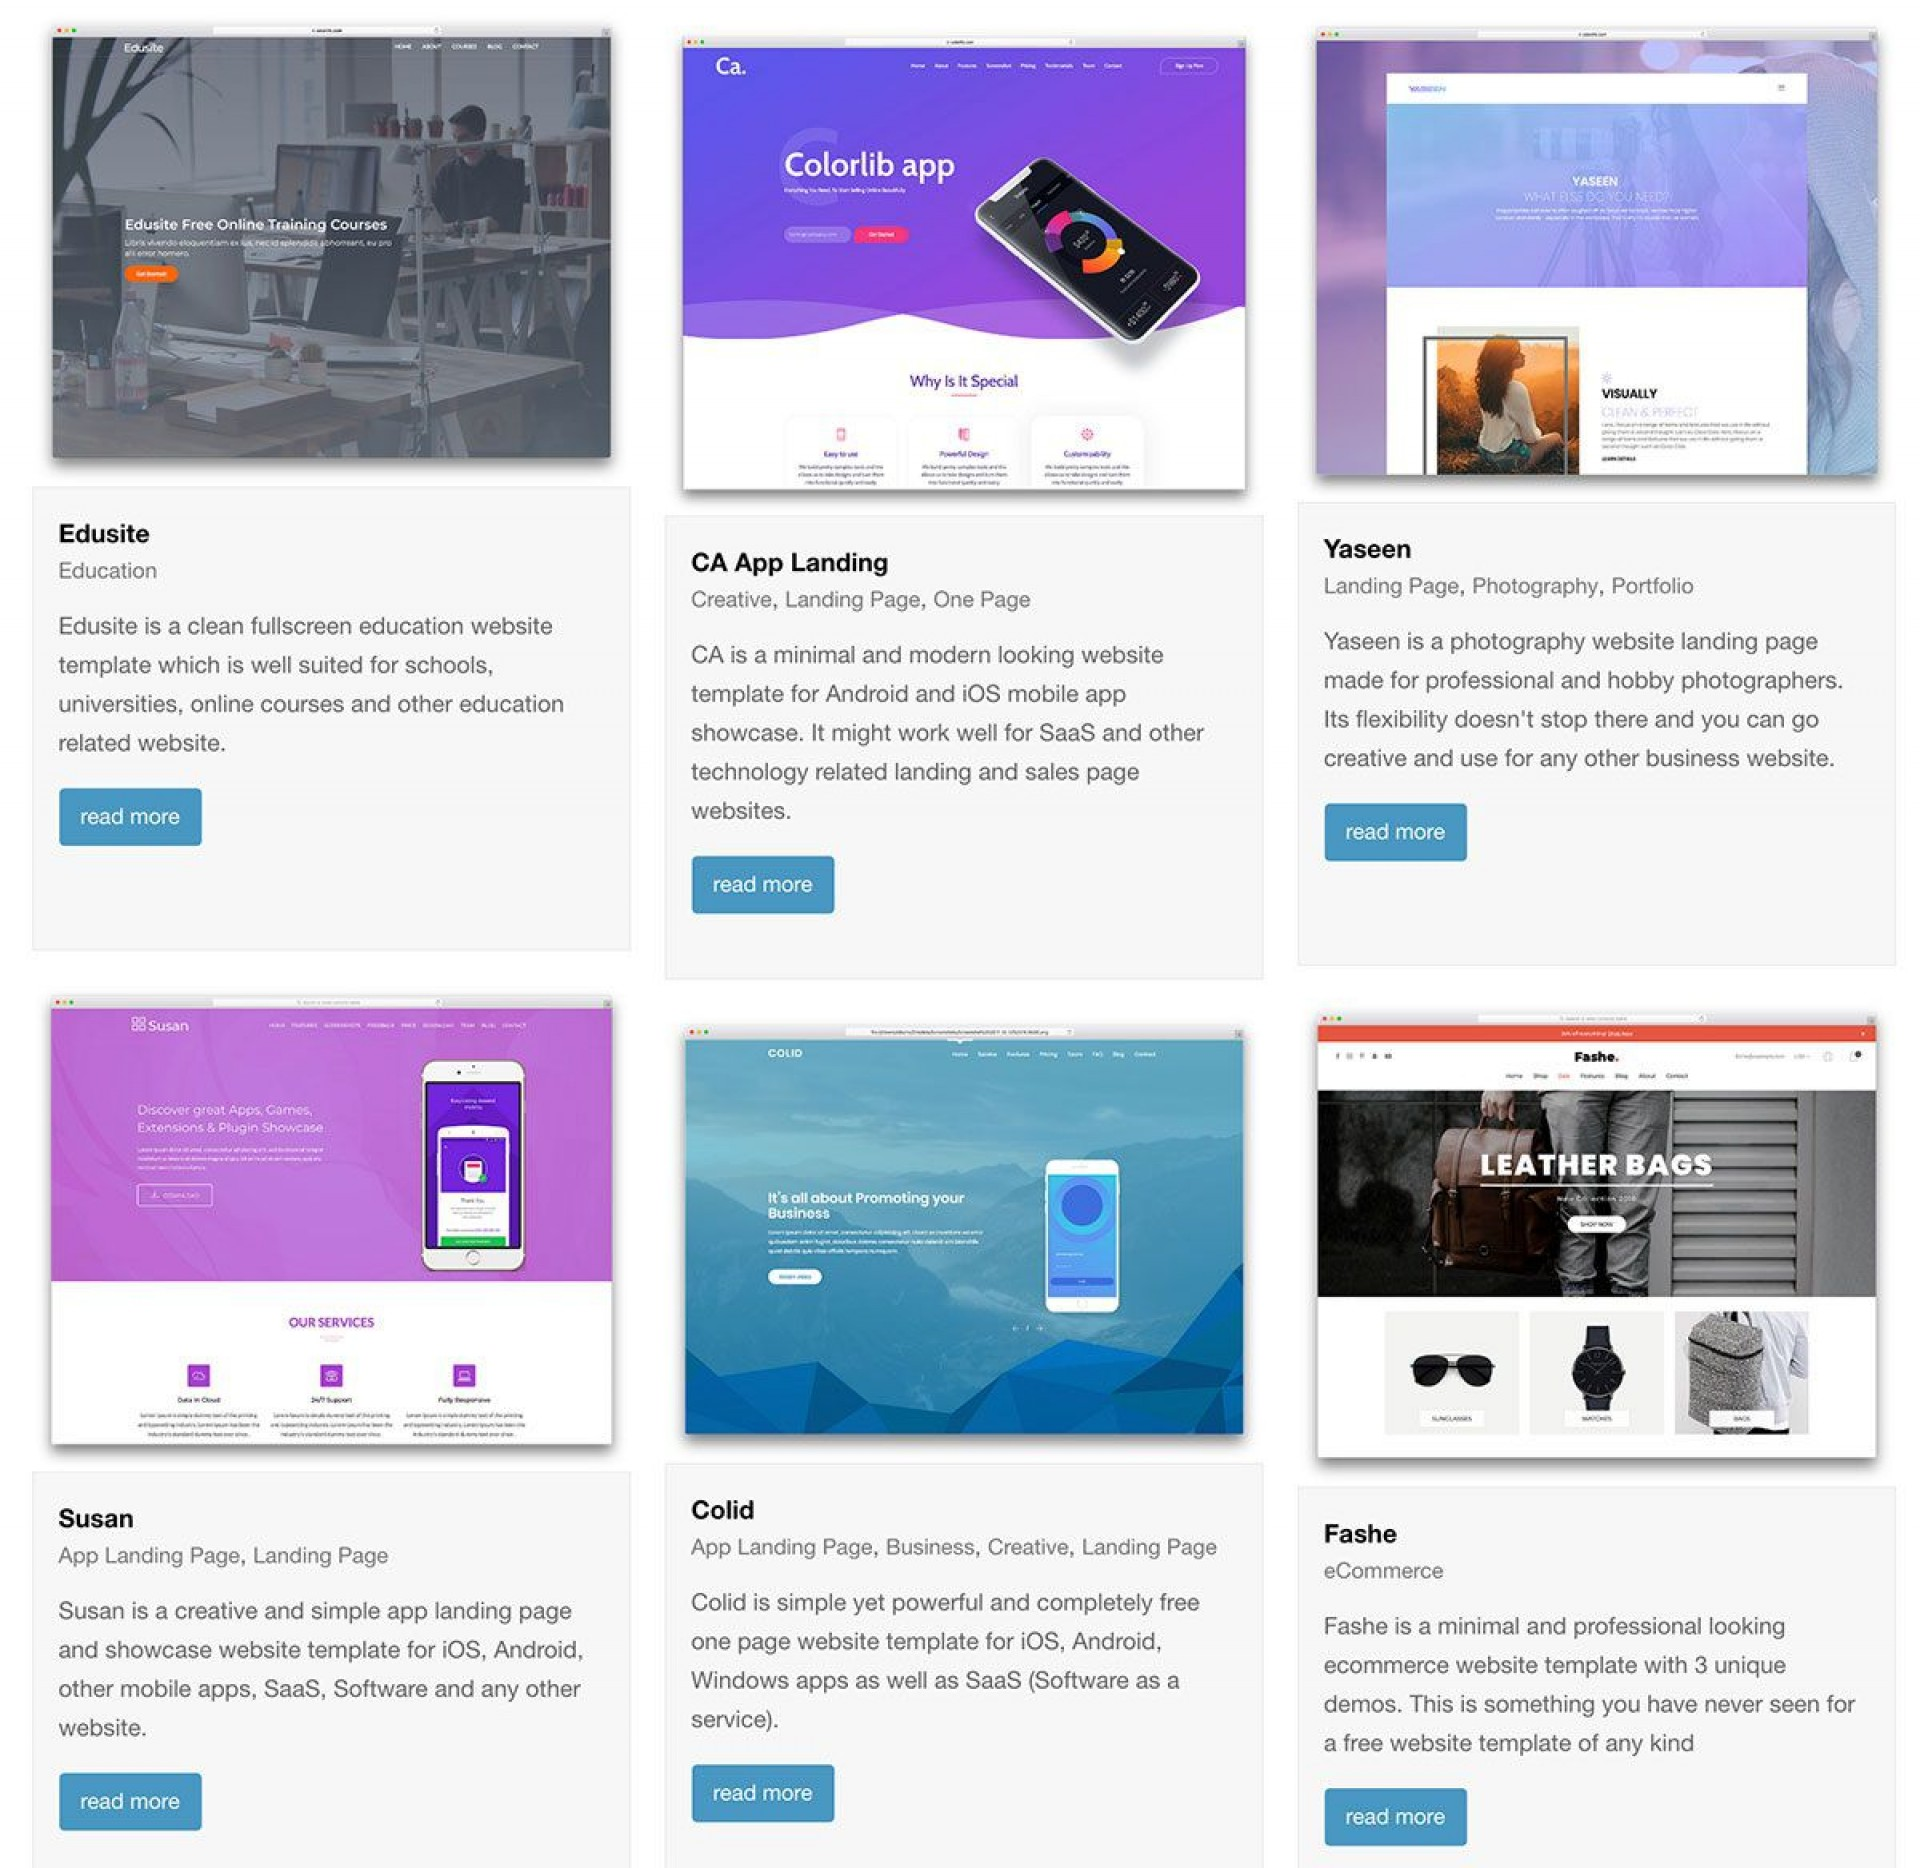 003 Unbelievable Website Template Html Cs Free Download Design  Registration Page With Javascript Jquery Responsive Student Form1920